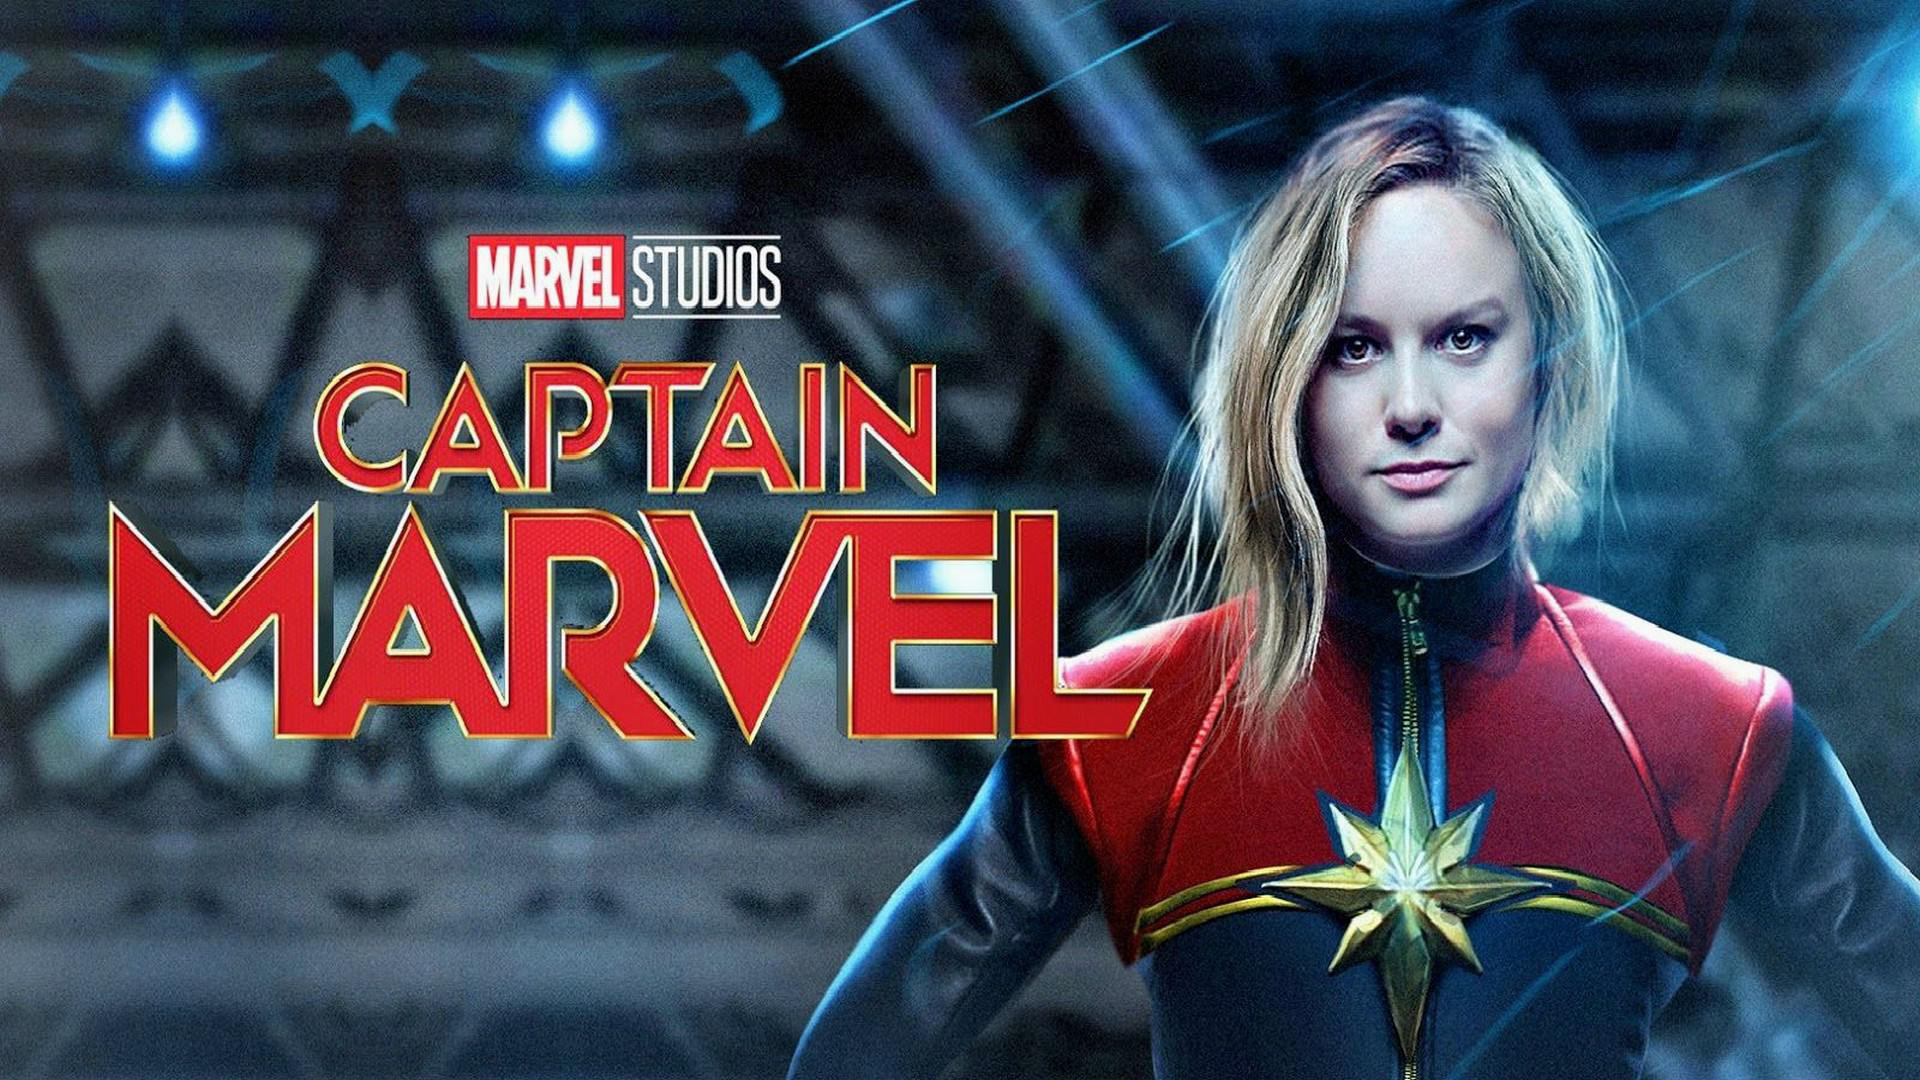 Captain Marvel Wallpaper Android Download Wallpaper Hd For Pc